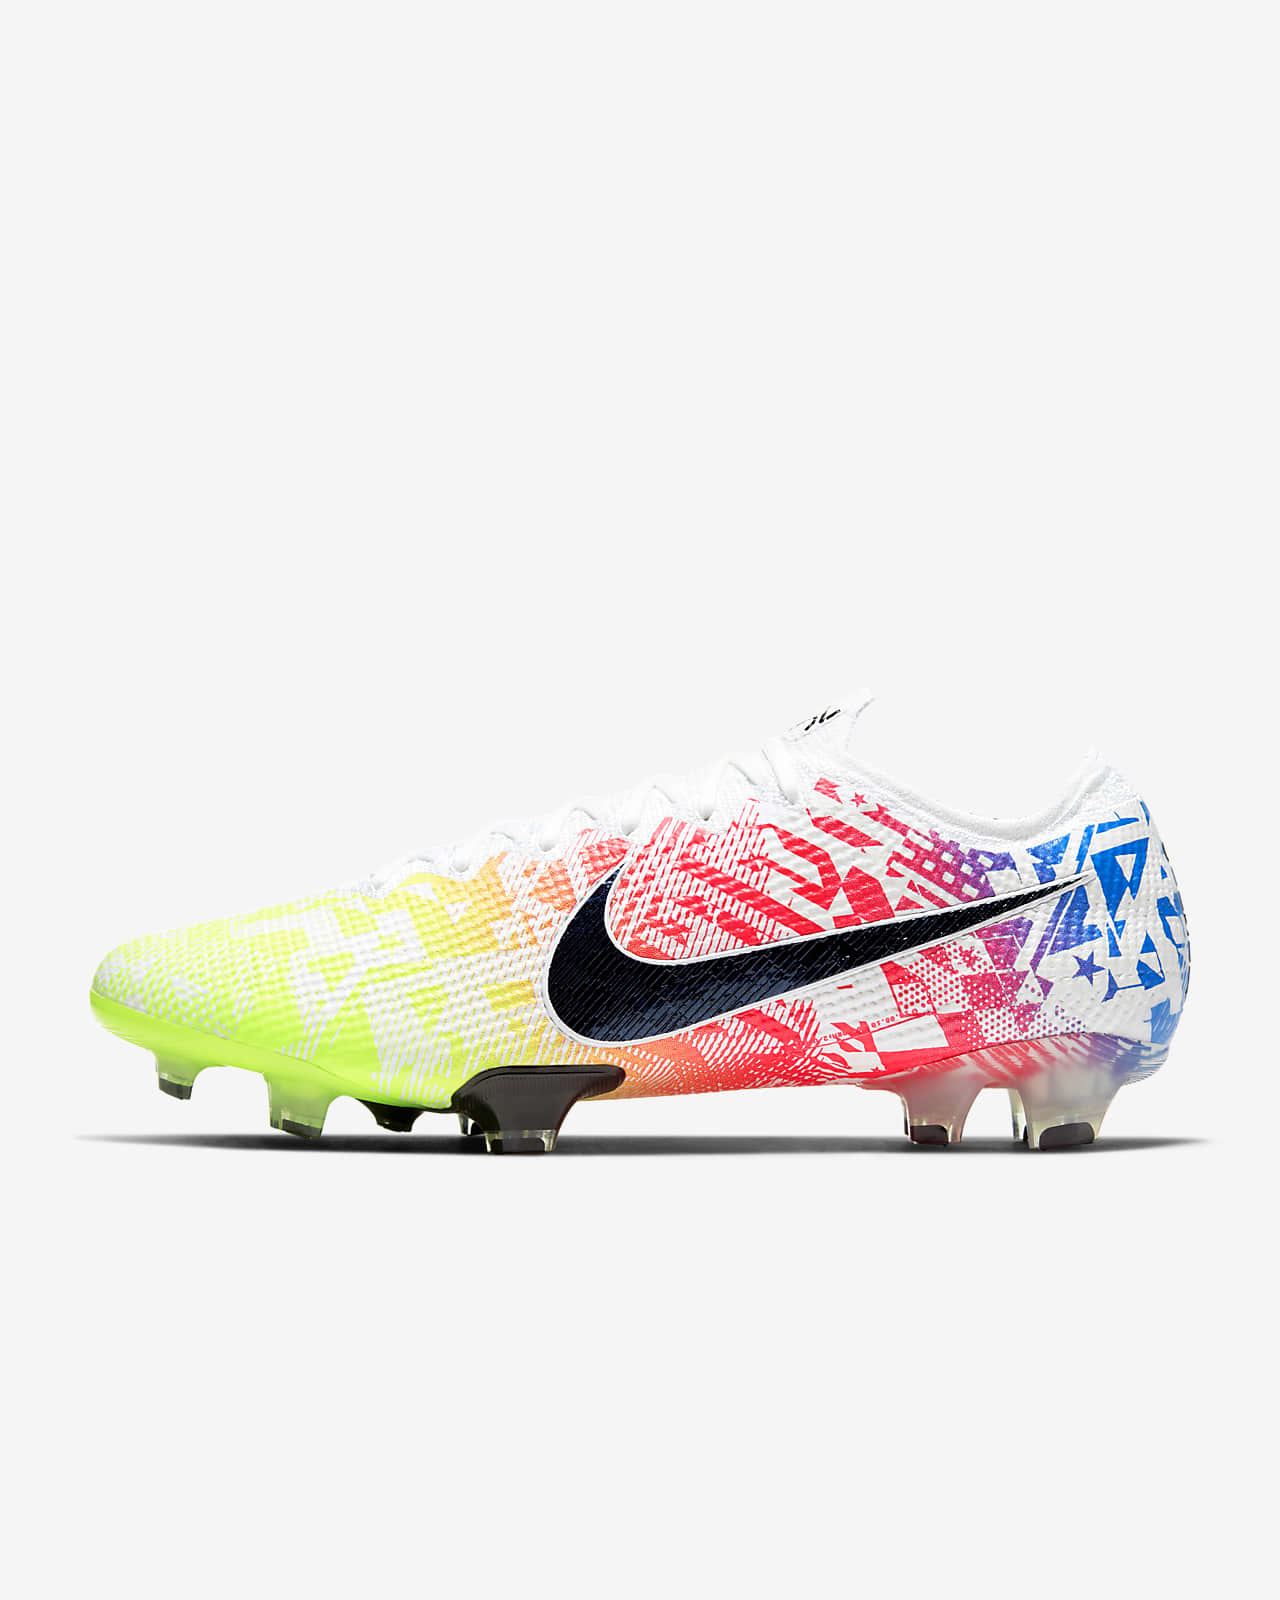 Nike Mercurial Vapor 13 Elite Neymar Jr. FG Firm-Ground Football Boot